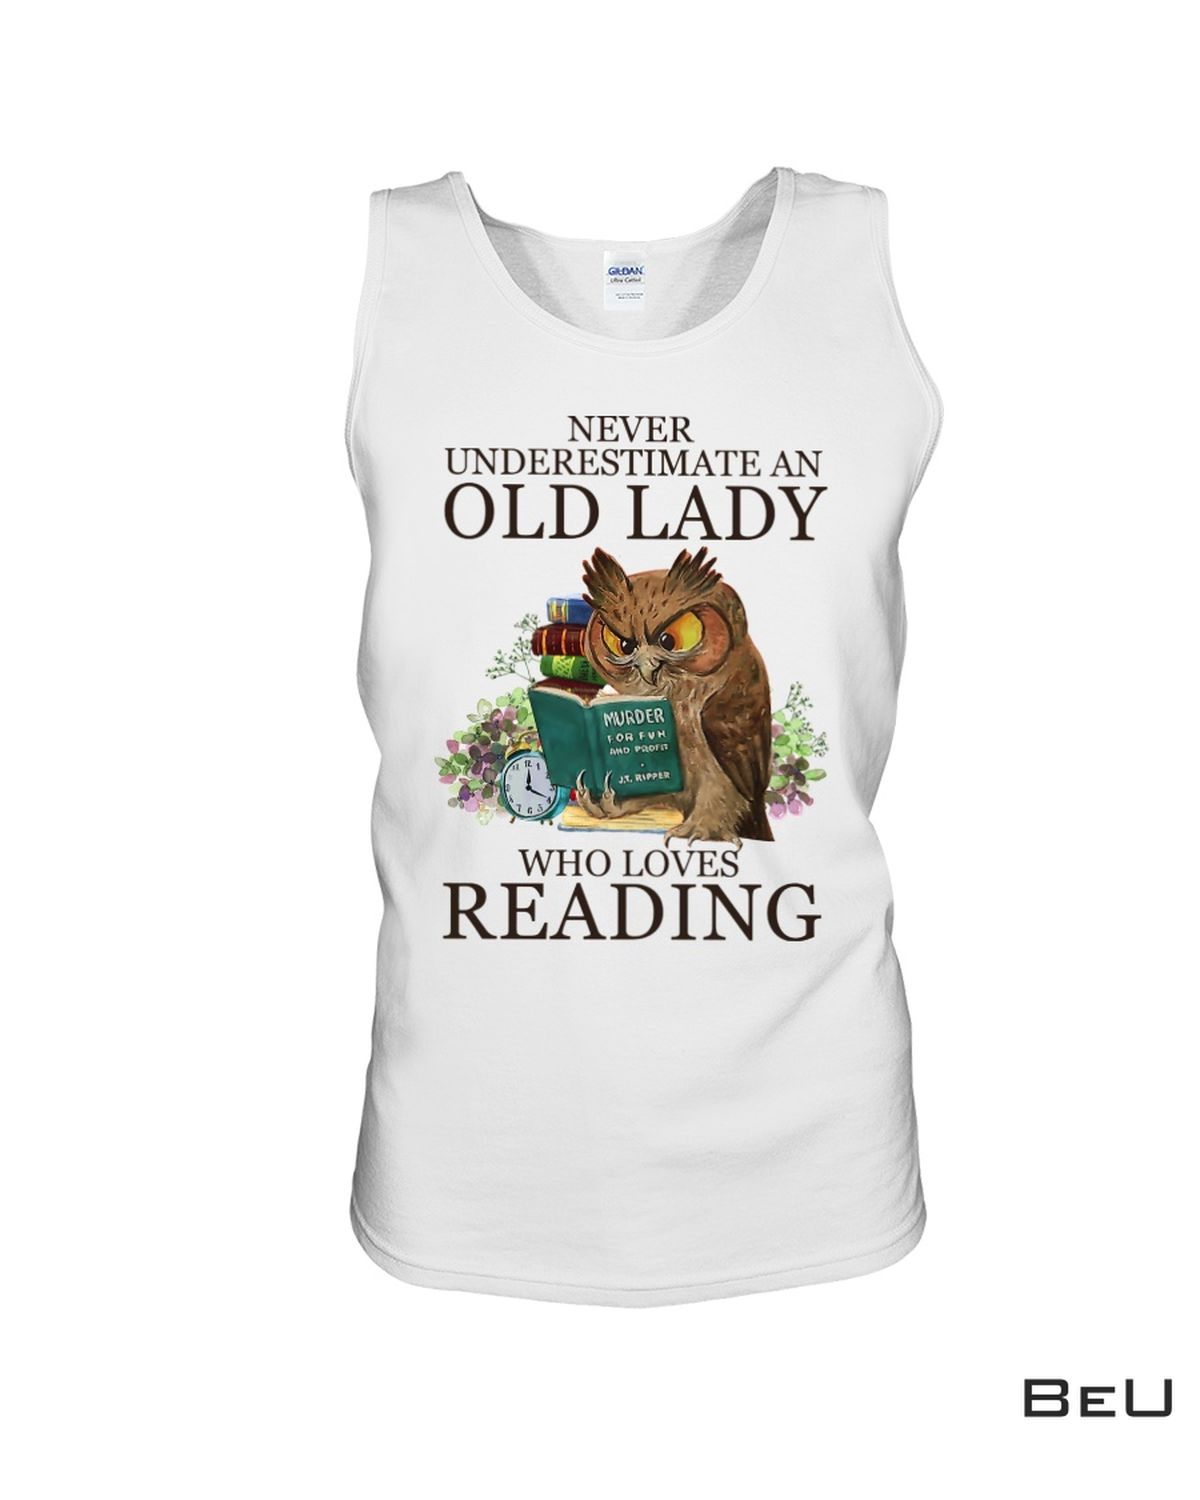 Handmade Never Underestimate An Old Lady Who Loves Reading Shirt, hoodie, tank top